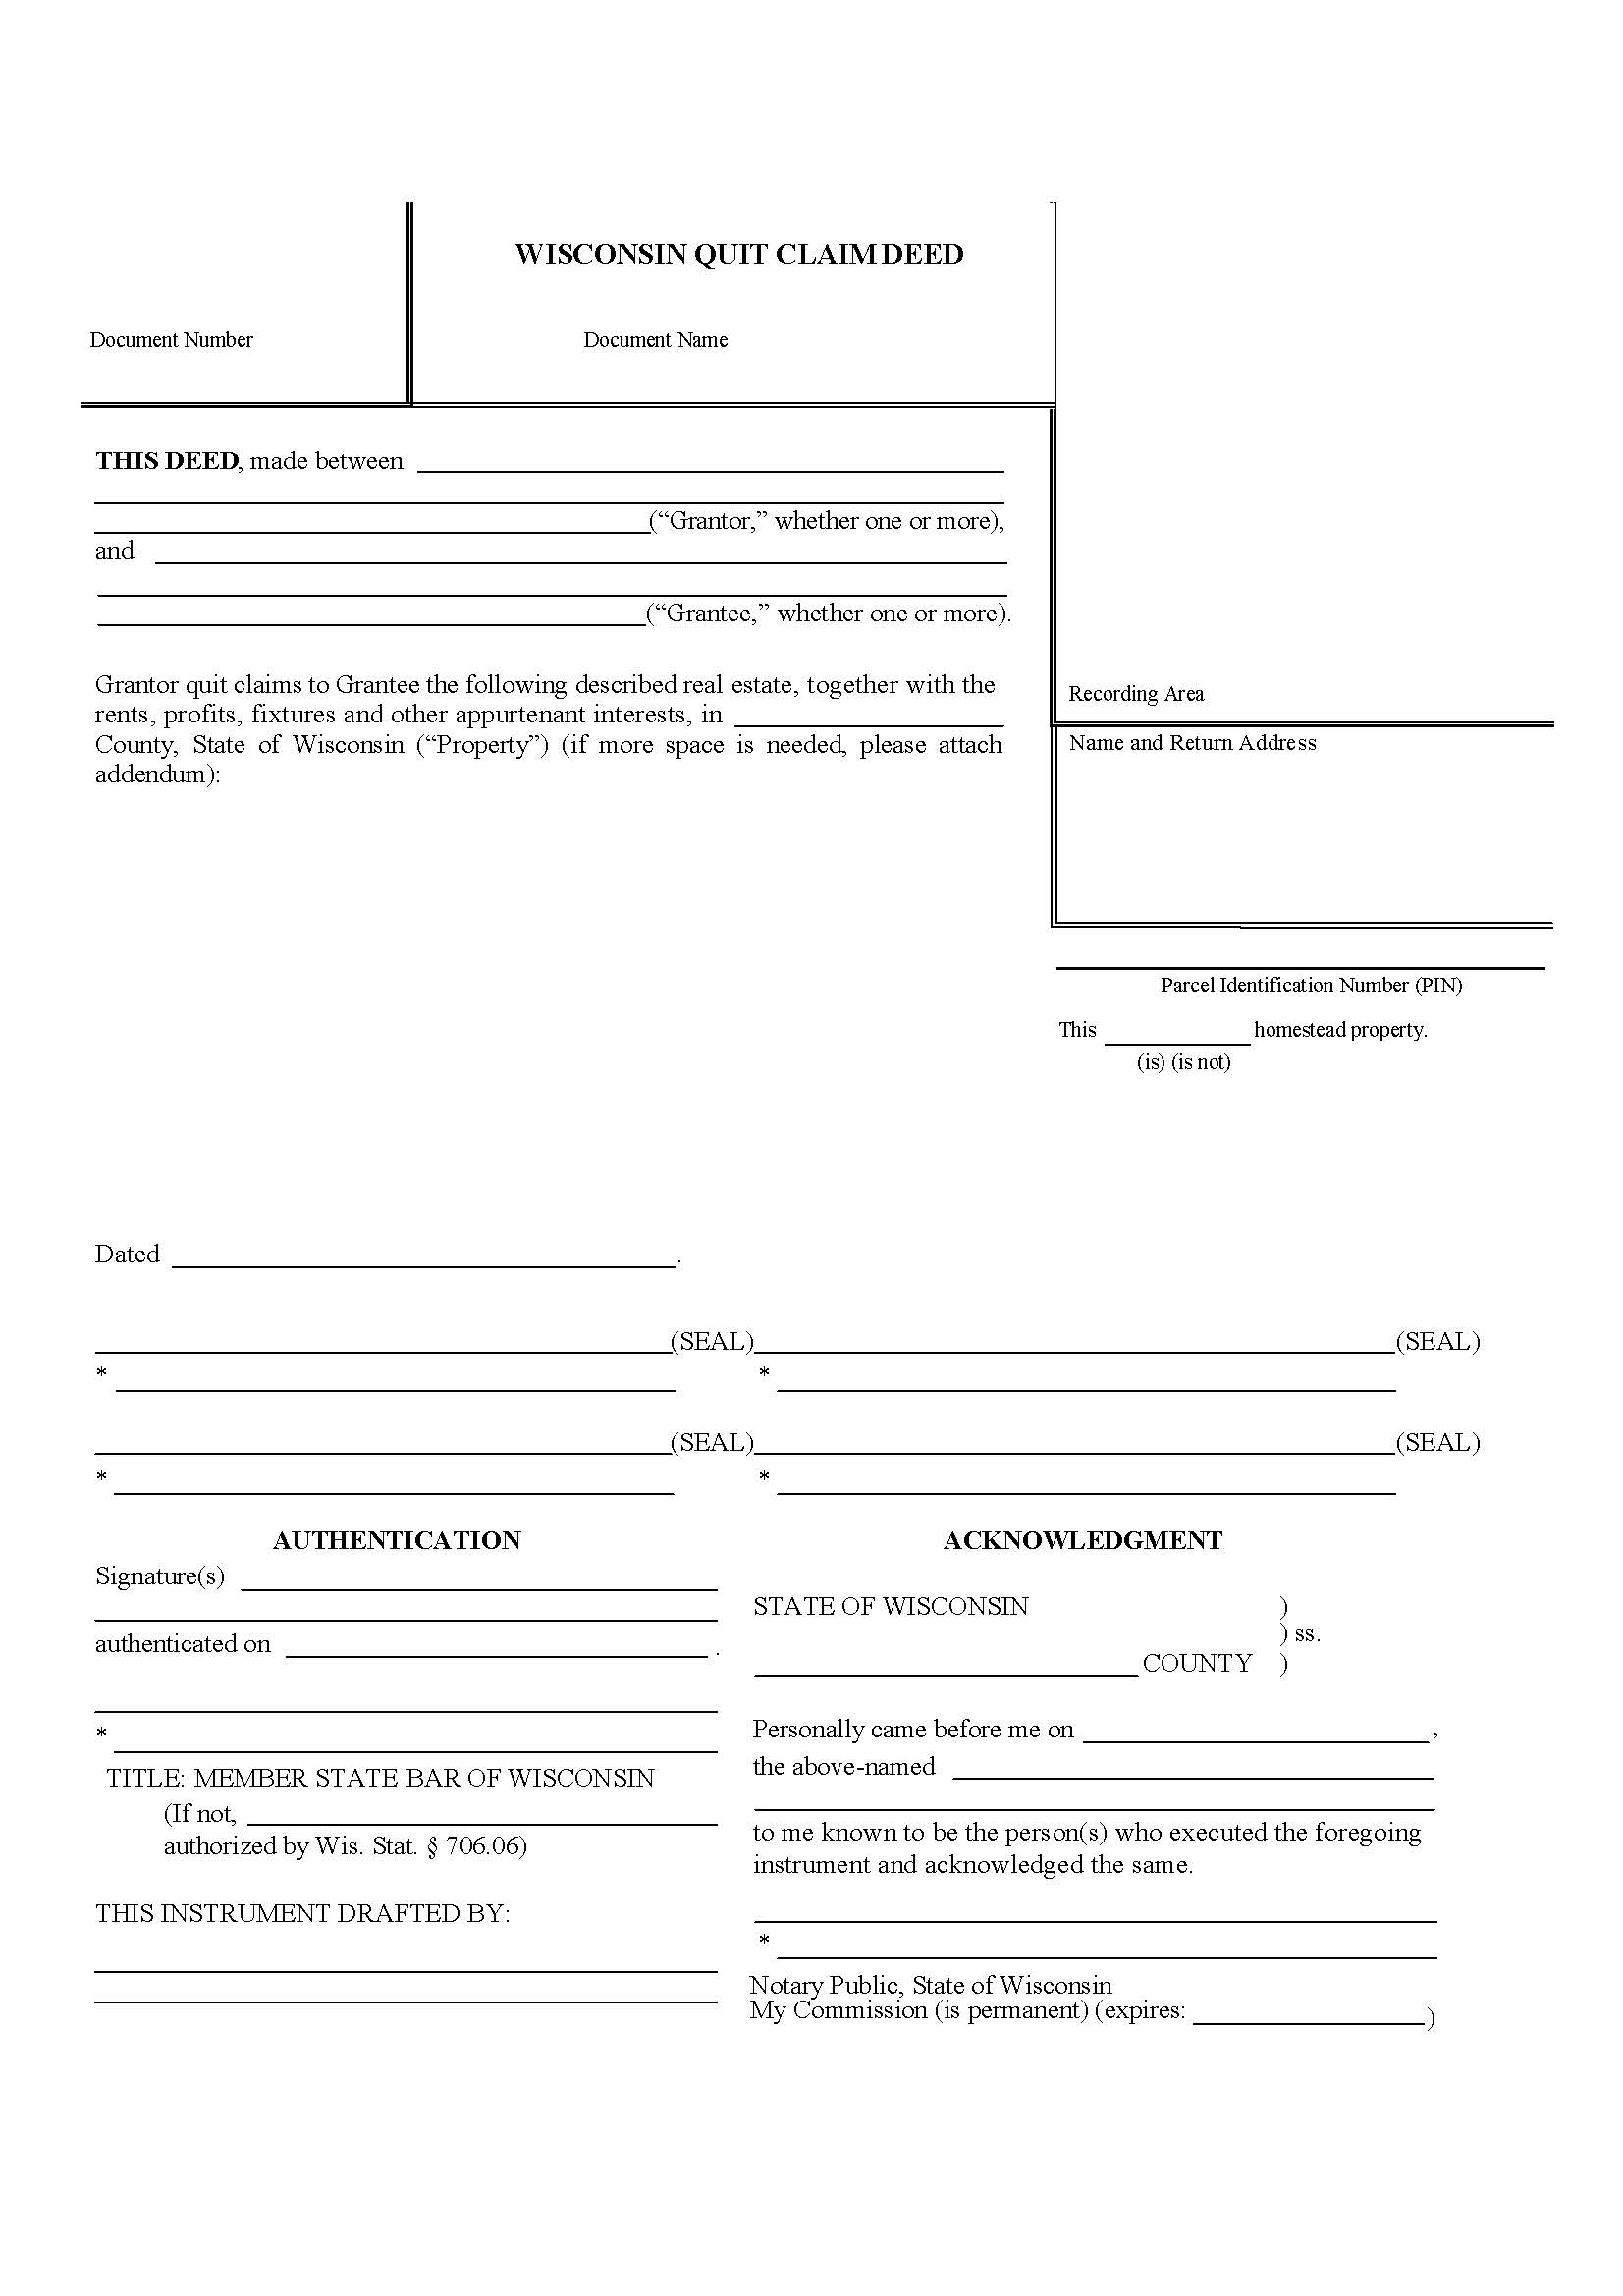 Quit Deed Claim Form Wisconsin